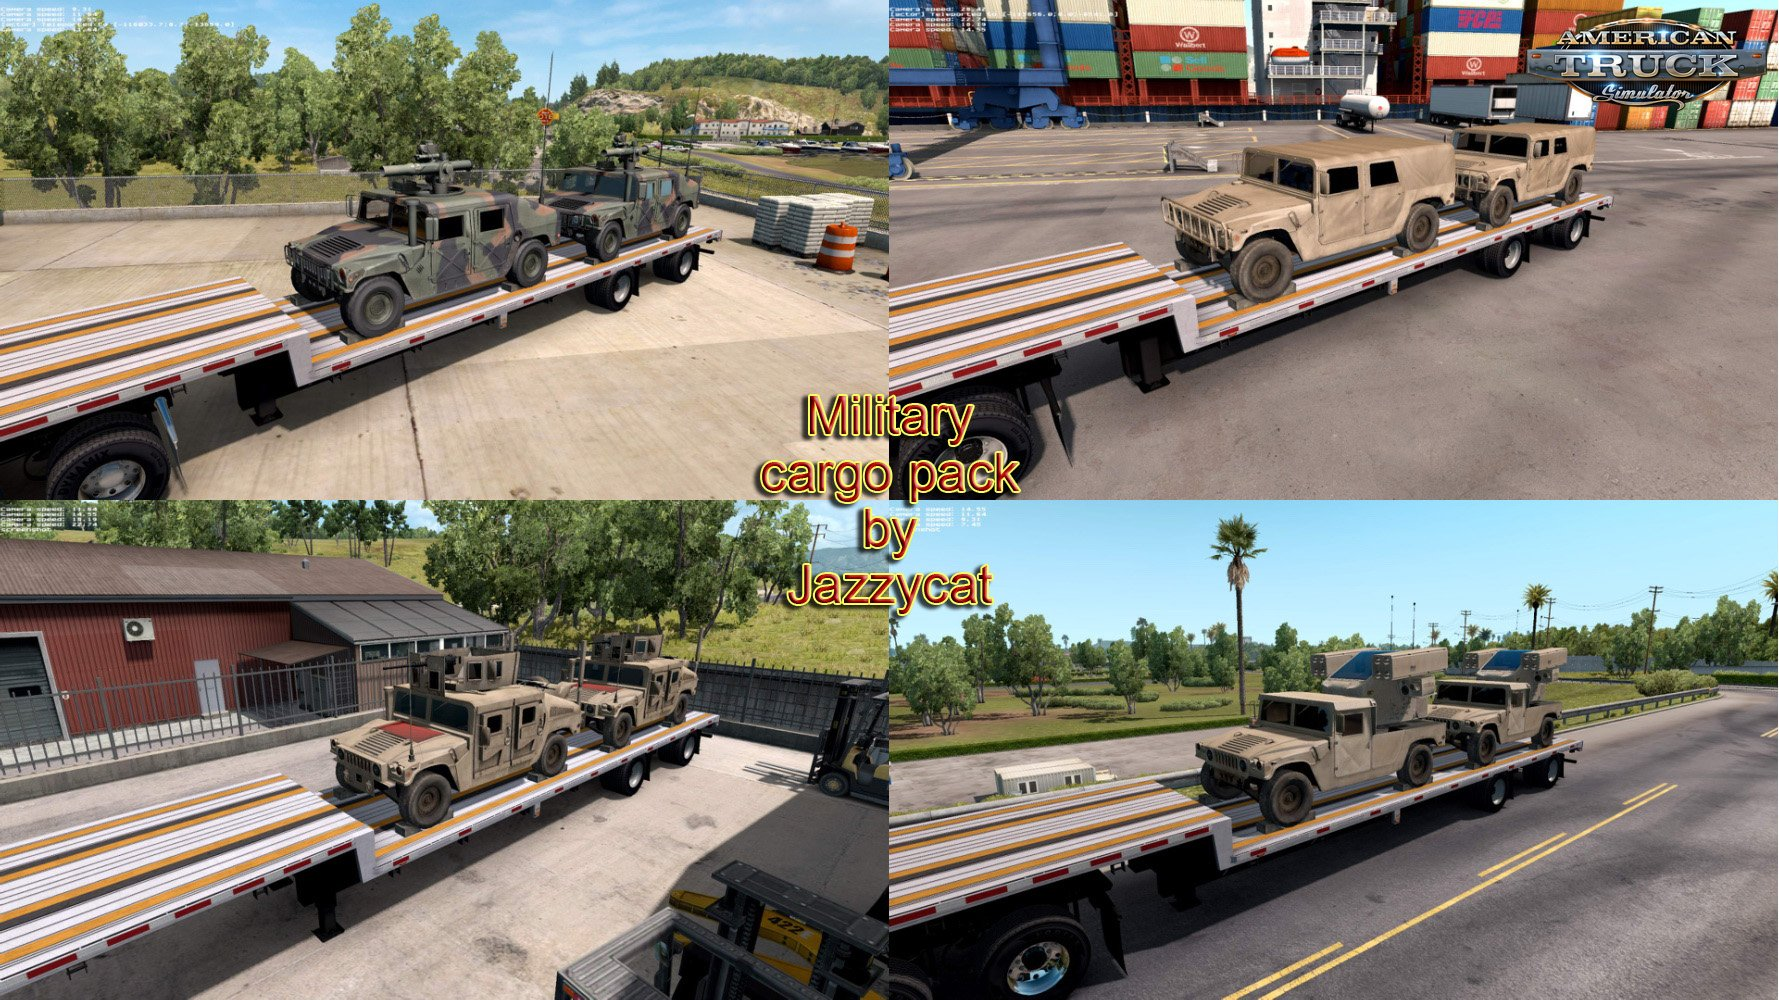 Fix for Military Cargo Pack by Jazzycat v1.1(ATS)